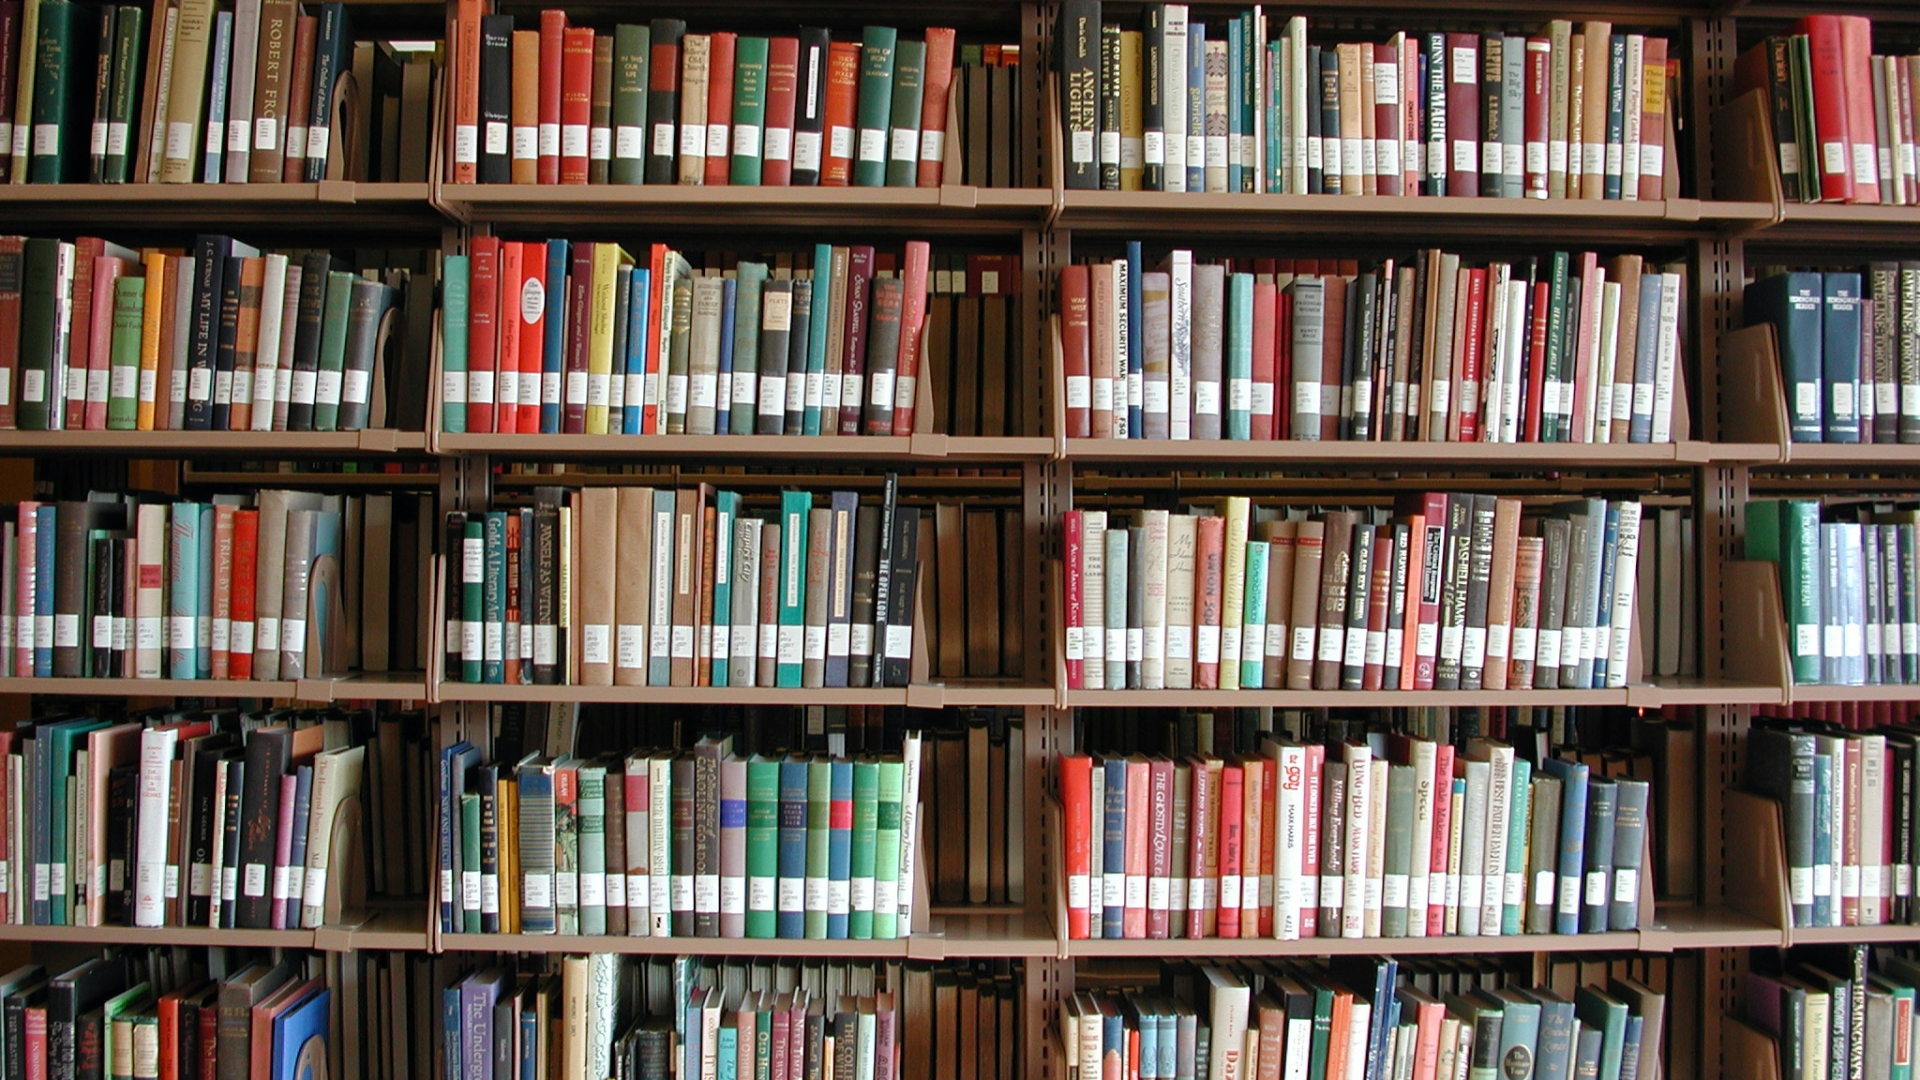 Books on a college library bookshelf. (Credit: Kickstand/Getty Images)